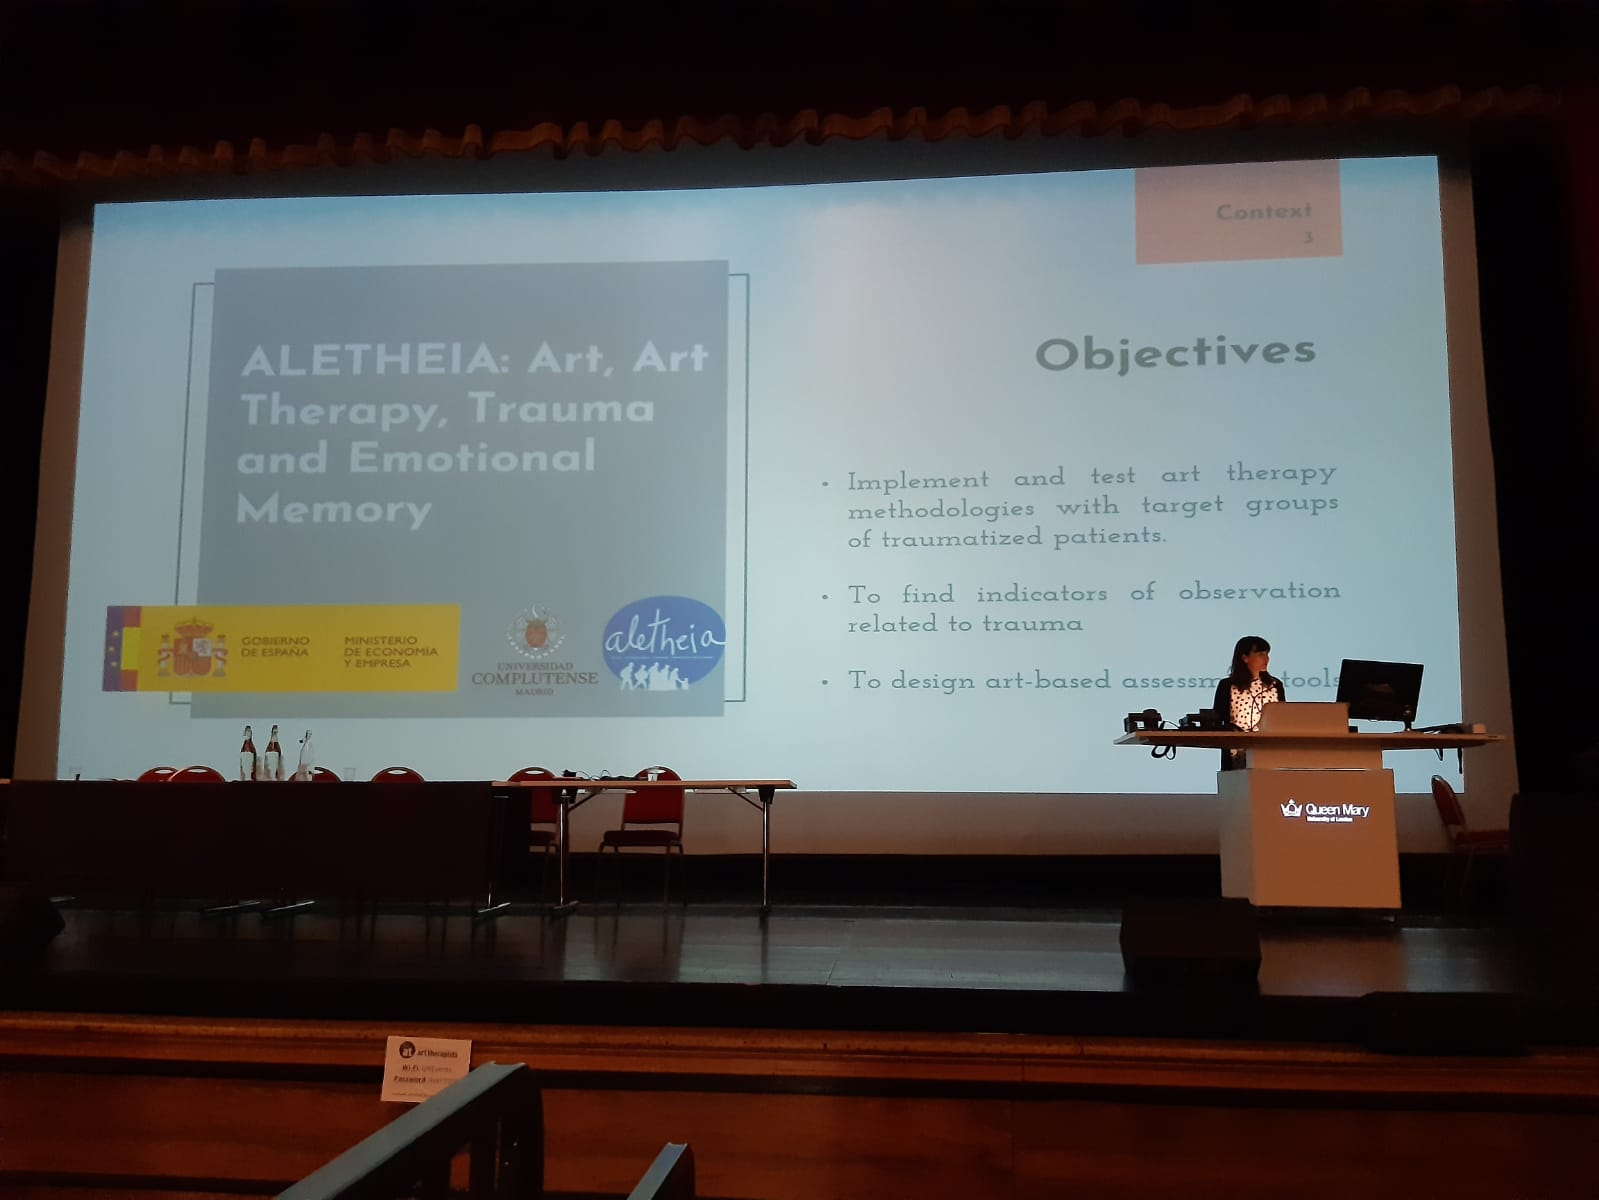 Carolina Peral presenta en el congreso internacional British Association of Art Therapist, una metodología de intervención